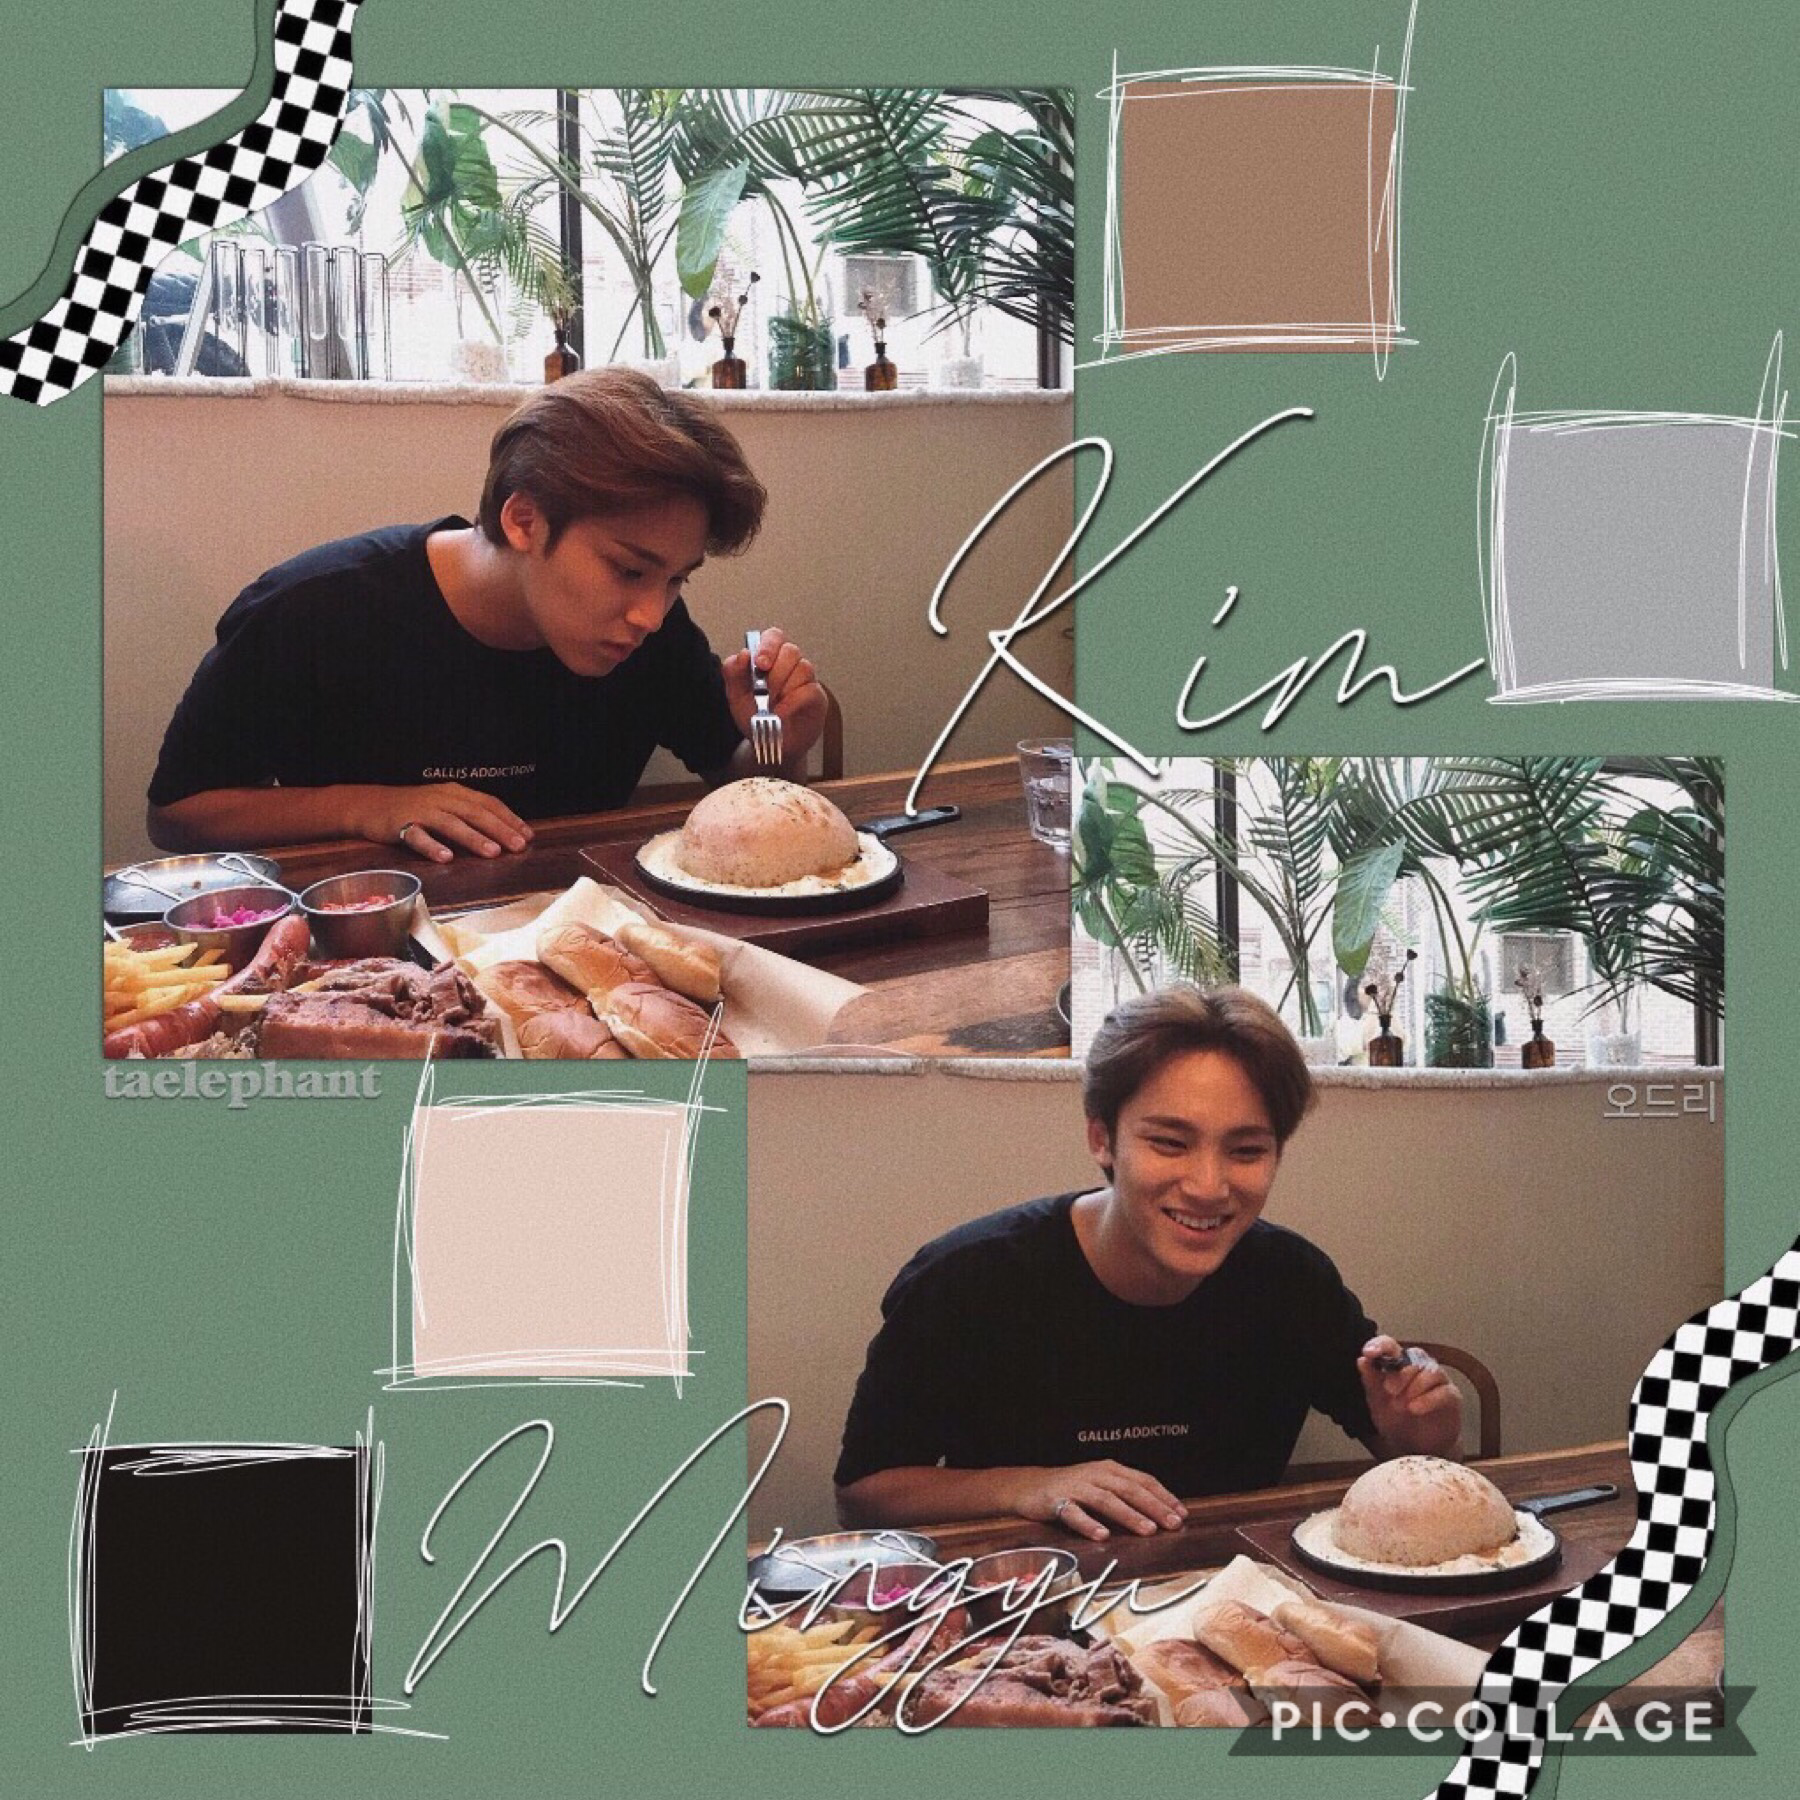 ♡ ♡ ♡ hi sisters! this edit was inspired by the very talented itsdrea_ if you don't think mingyu is pretty then you are blind sorry I don't make the rules